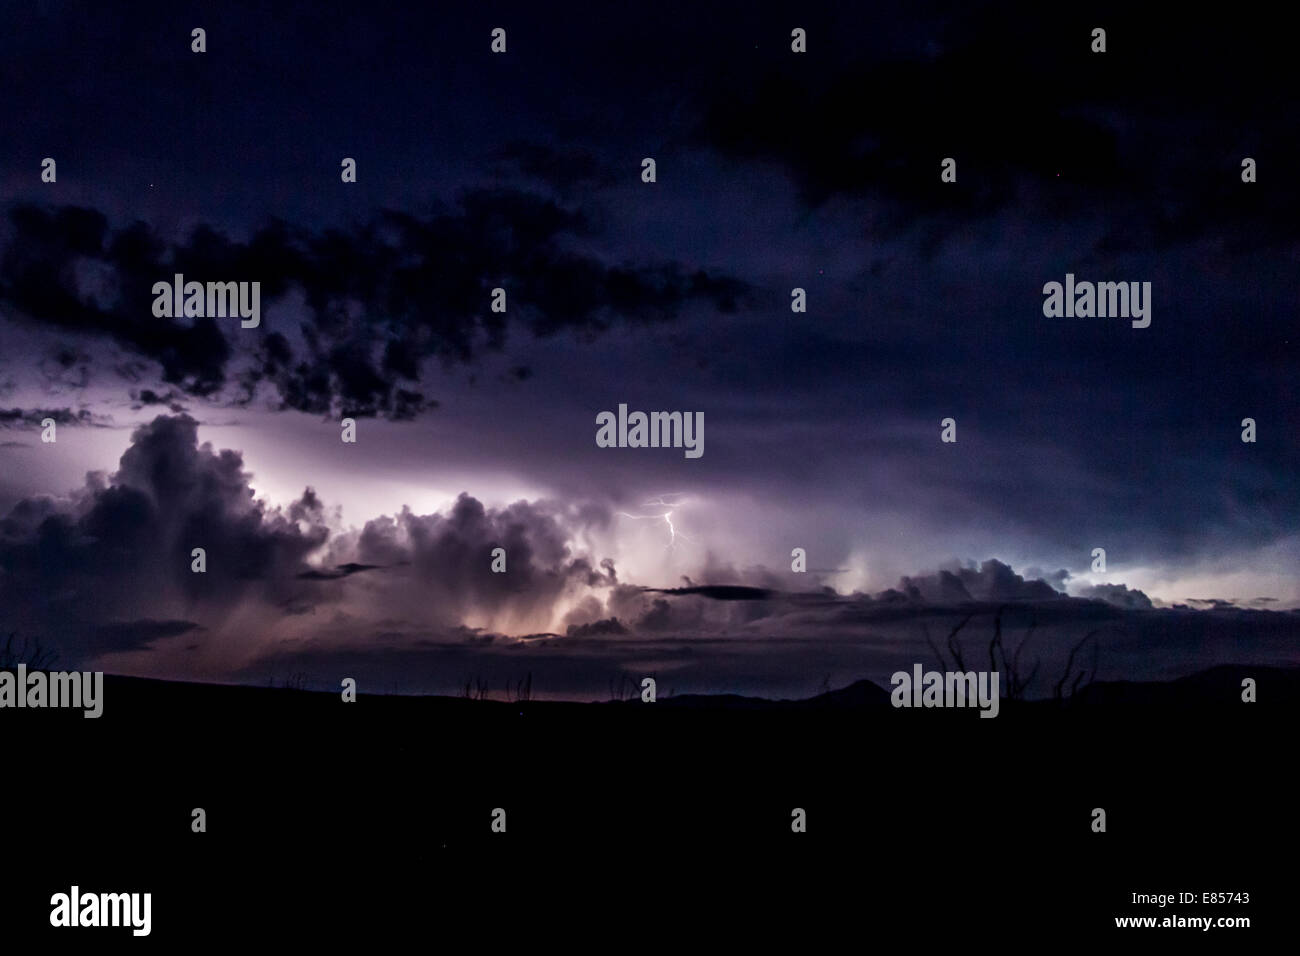 Lightning and thunderstorm on horizon with stars in night sky above in Big Bend National Park in Texas. Stock Photo